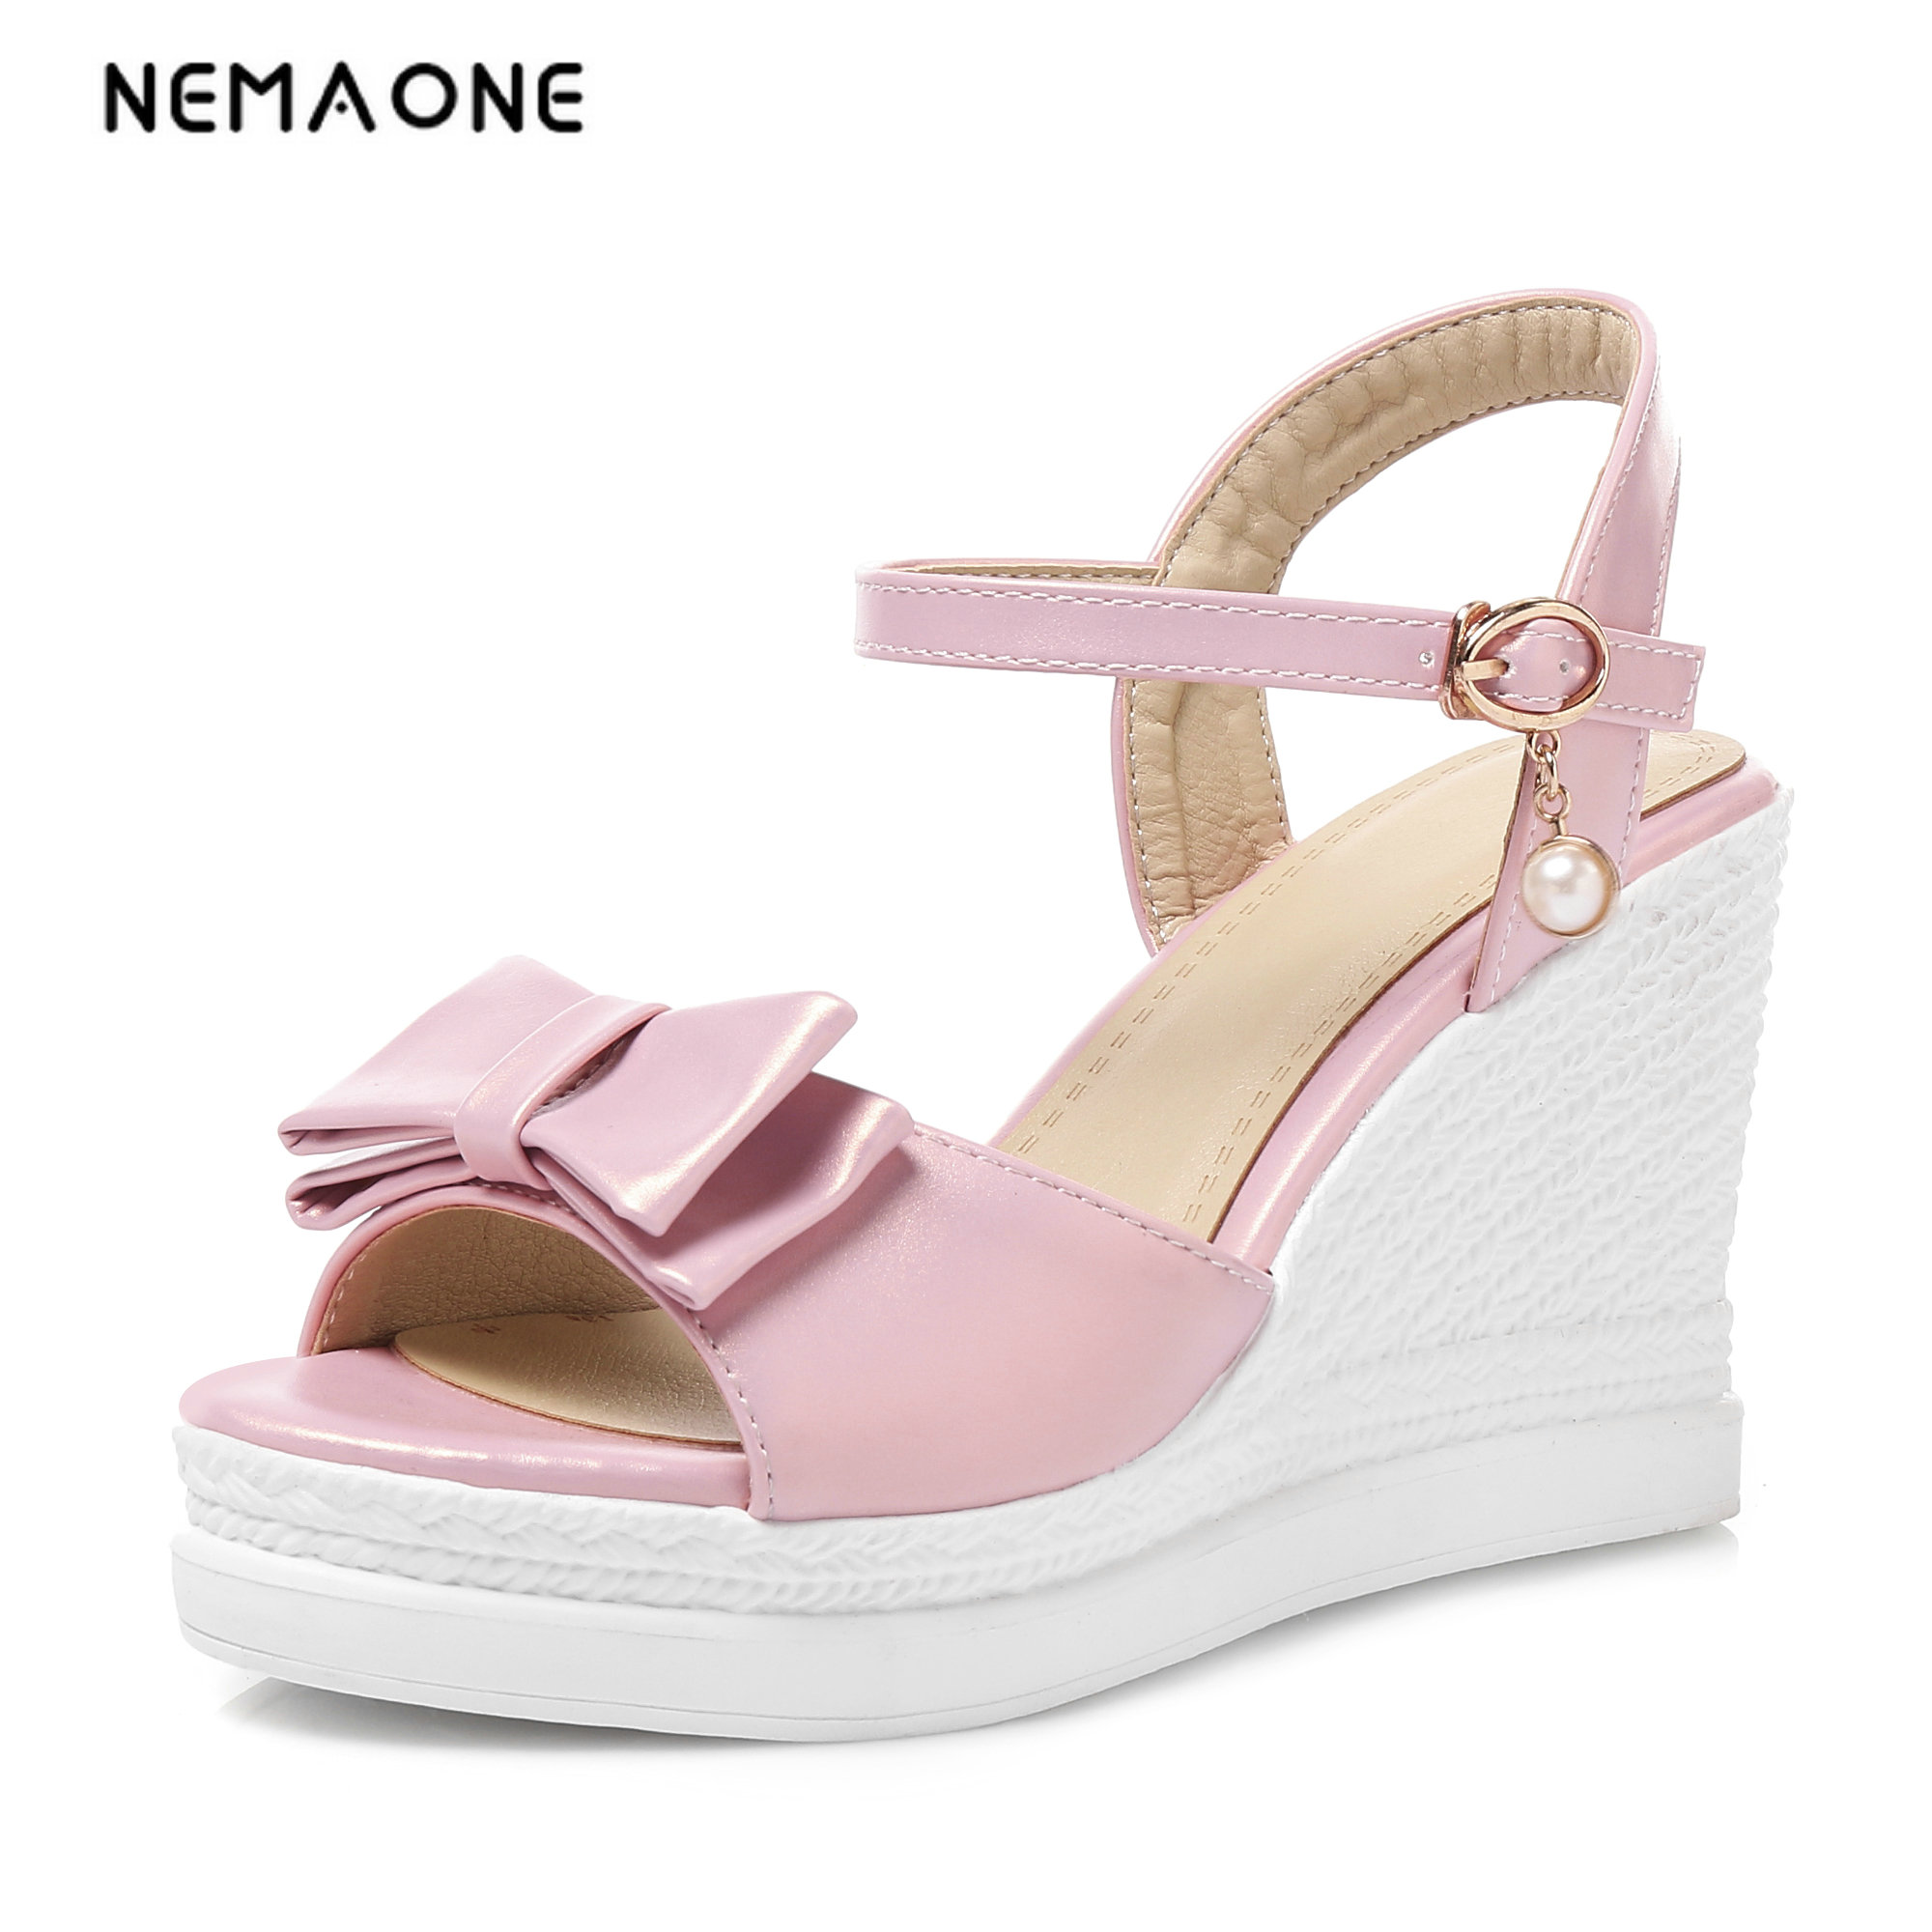 NEMAONE Sexy Open toe Wedges Gladiator Sandals Women High Heels Platform Sandals Summer Women's Shoes Woman summer shoes woman platform sandals women soft leather casual open toe gladiator wedges women nurse shoes zapatos mujer size 8